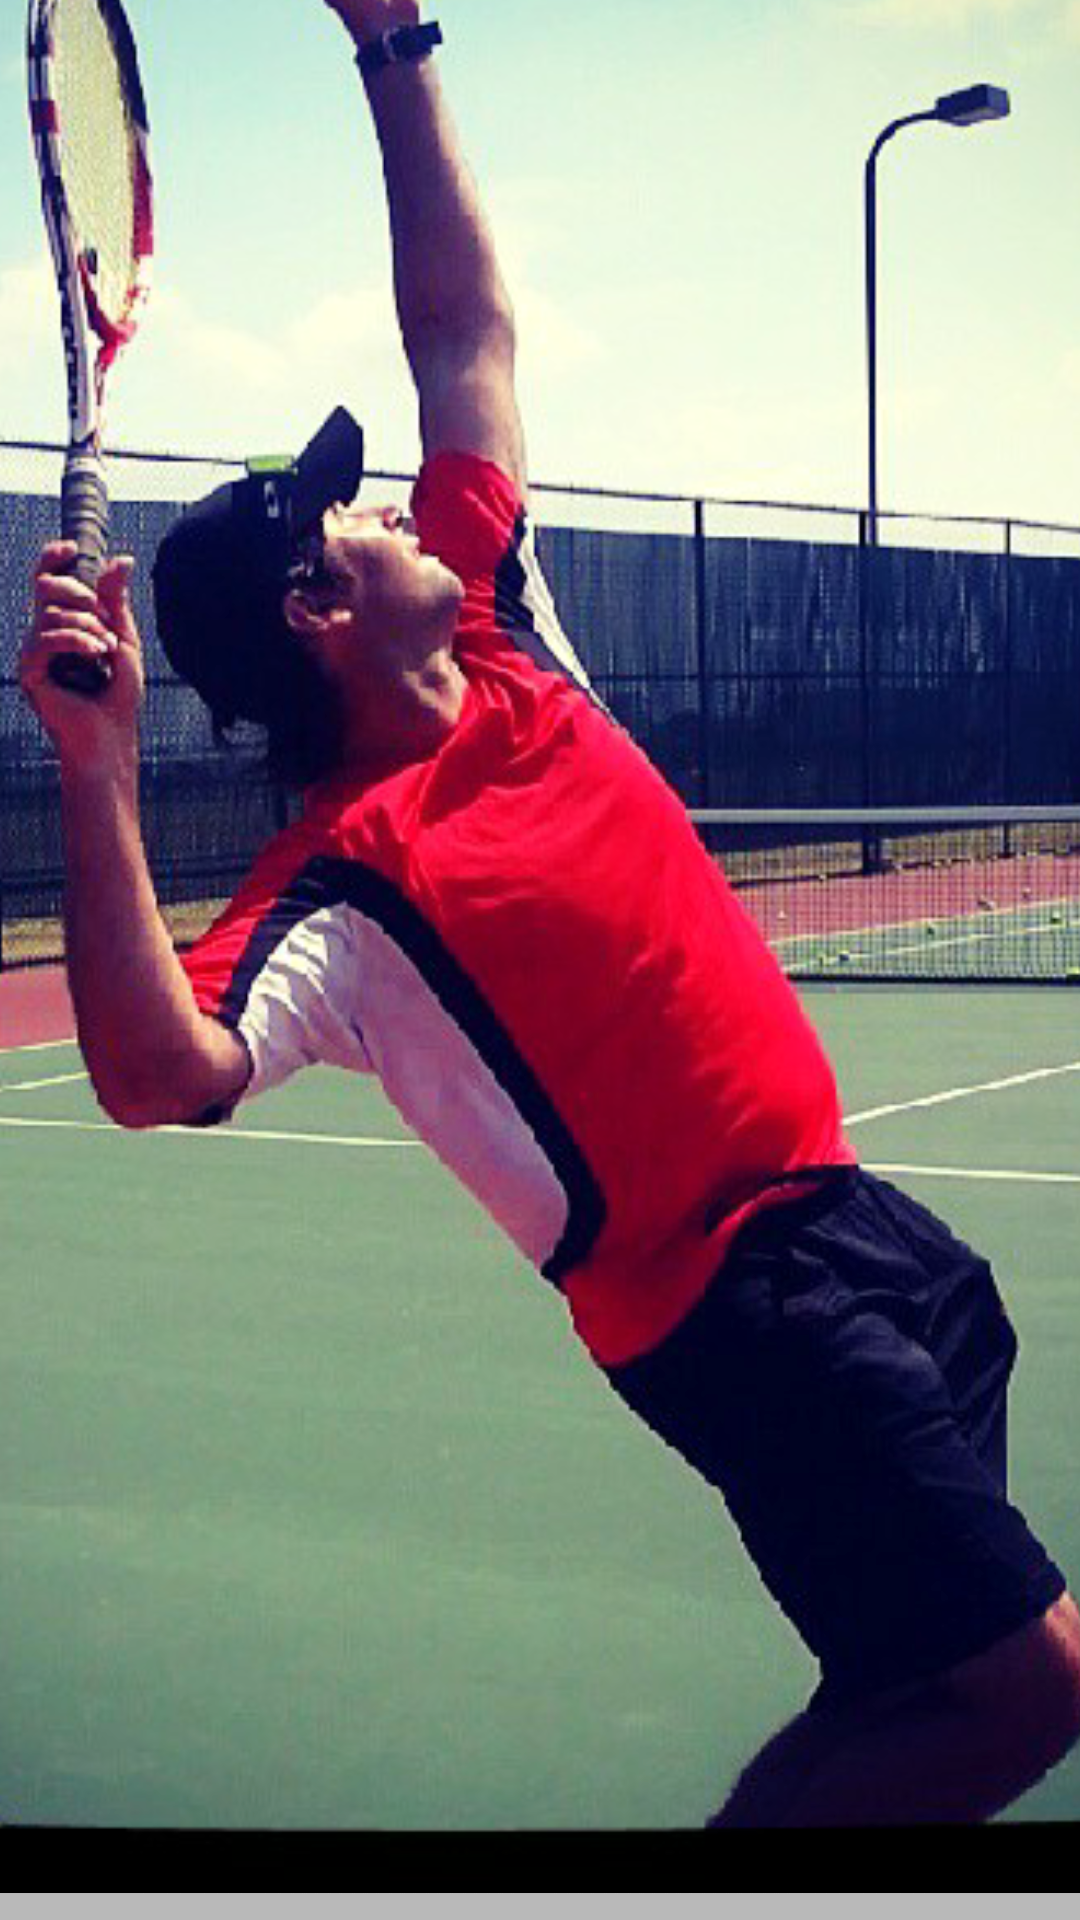 Andres I. teaches tennis lessons in Allen, TX